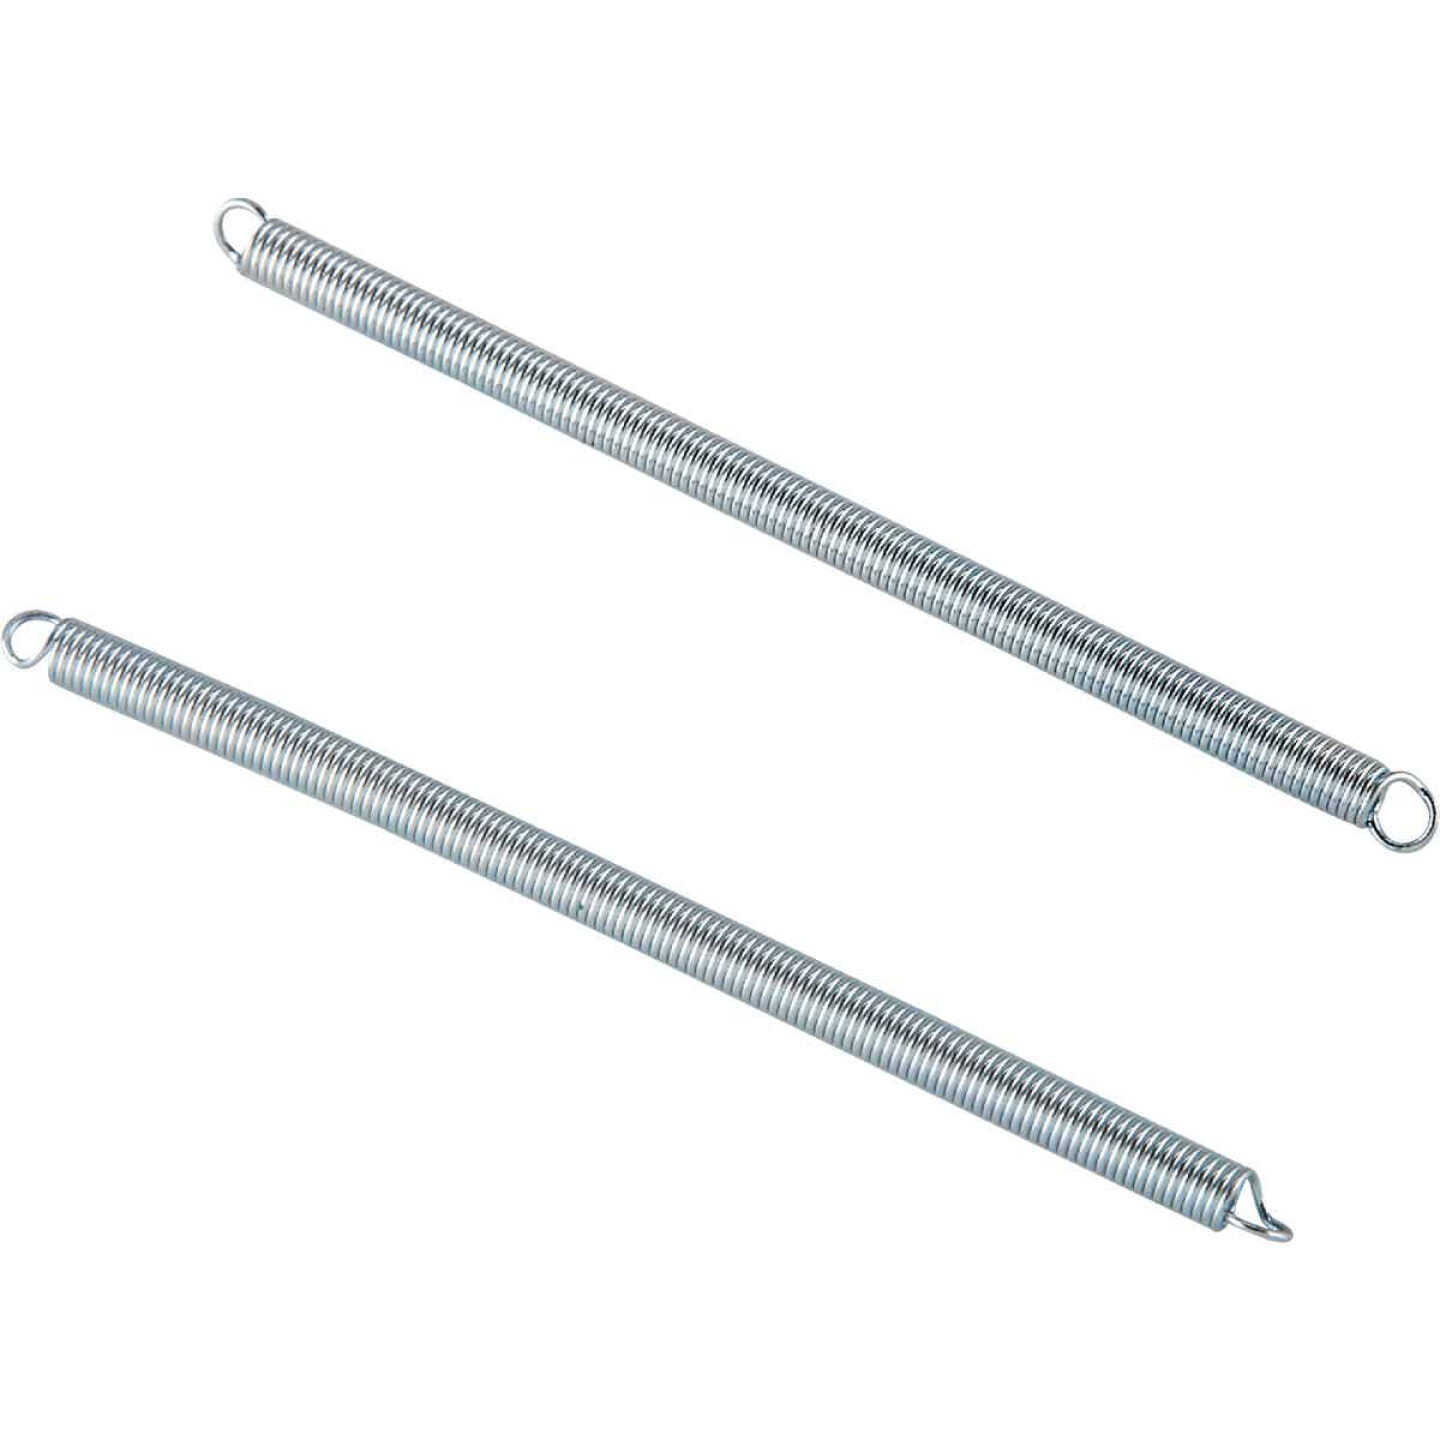 Century Spring 4 In. x 9/16 In. Extension Spring (2 Count) Image 1